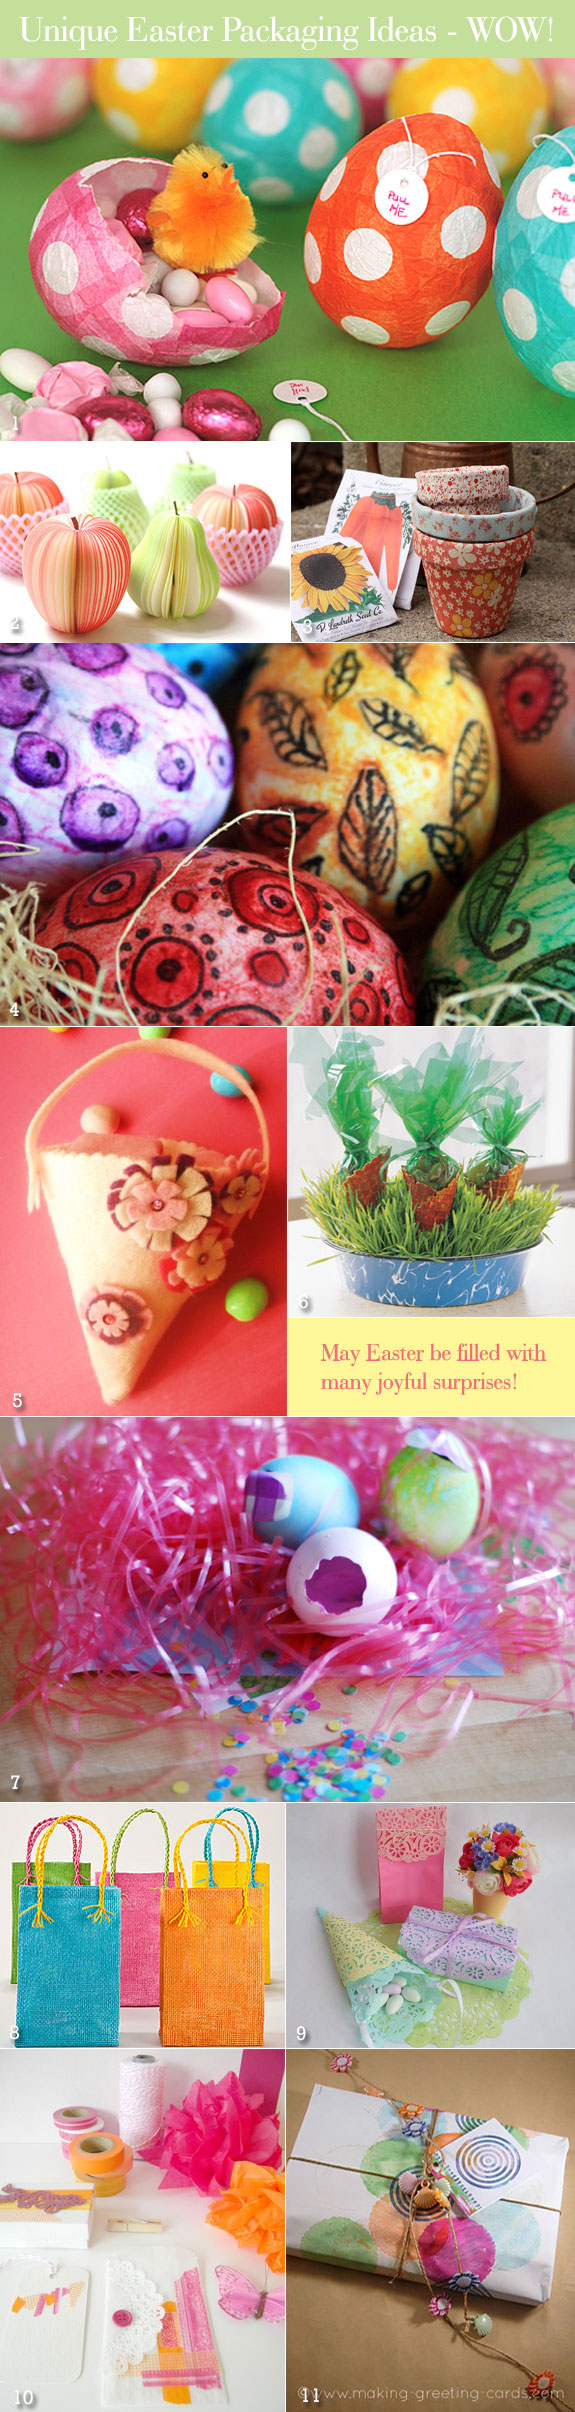 Easter packaging ideas